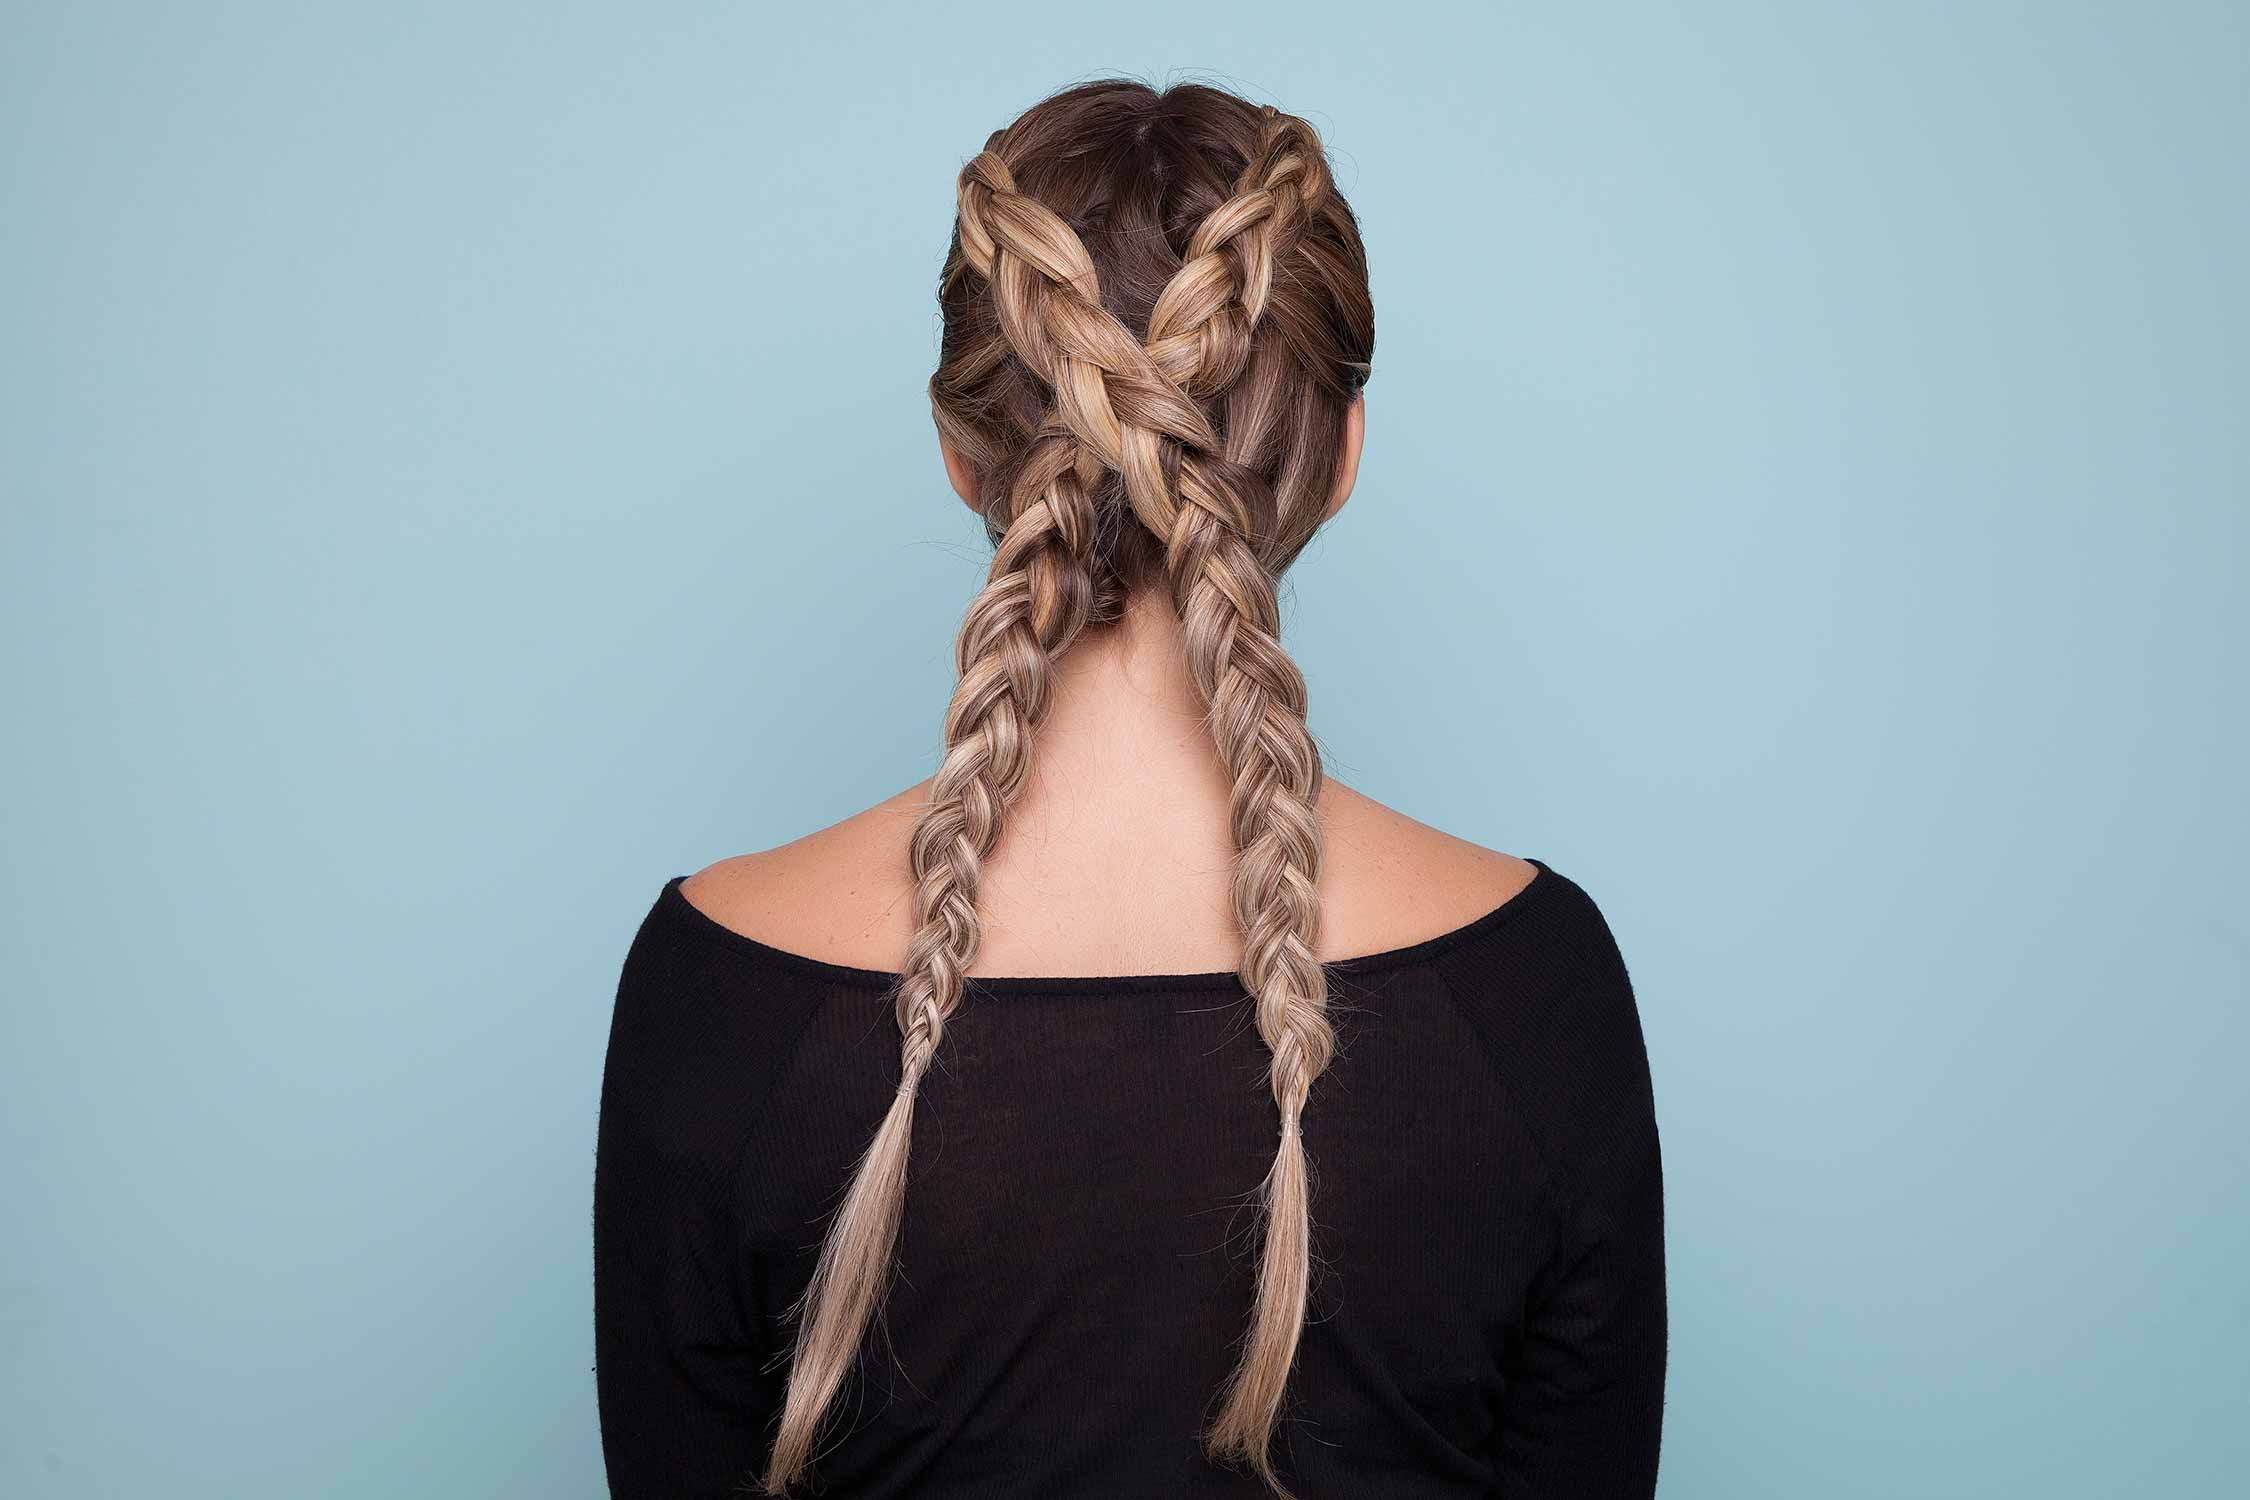 Long straight hair ideas: cross braid